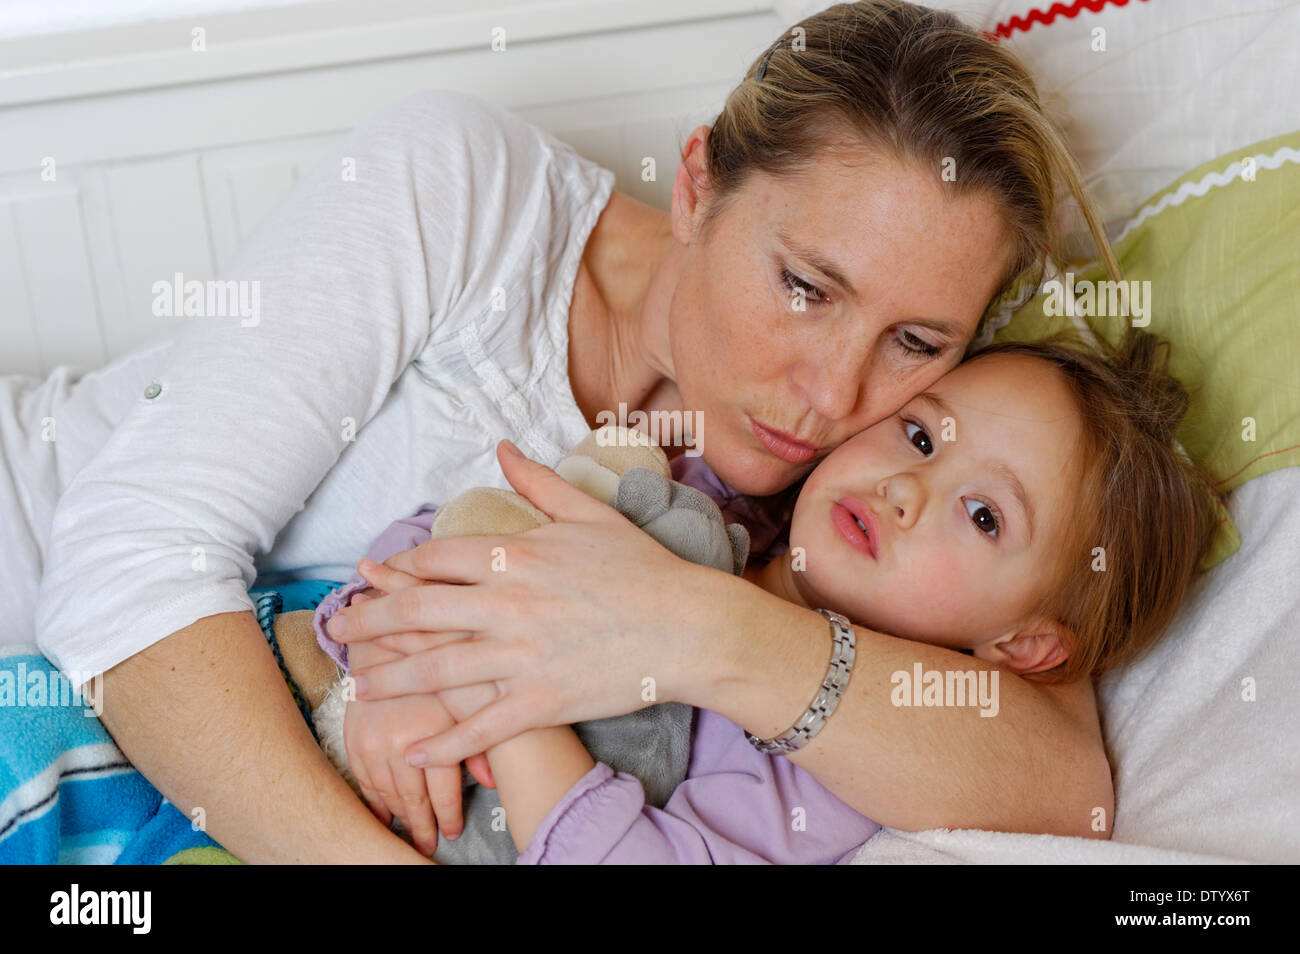 Mère et fille de câlins au lit, serrant Photo Stock